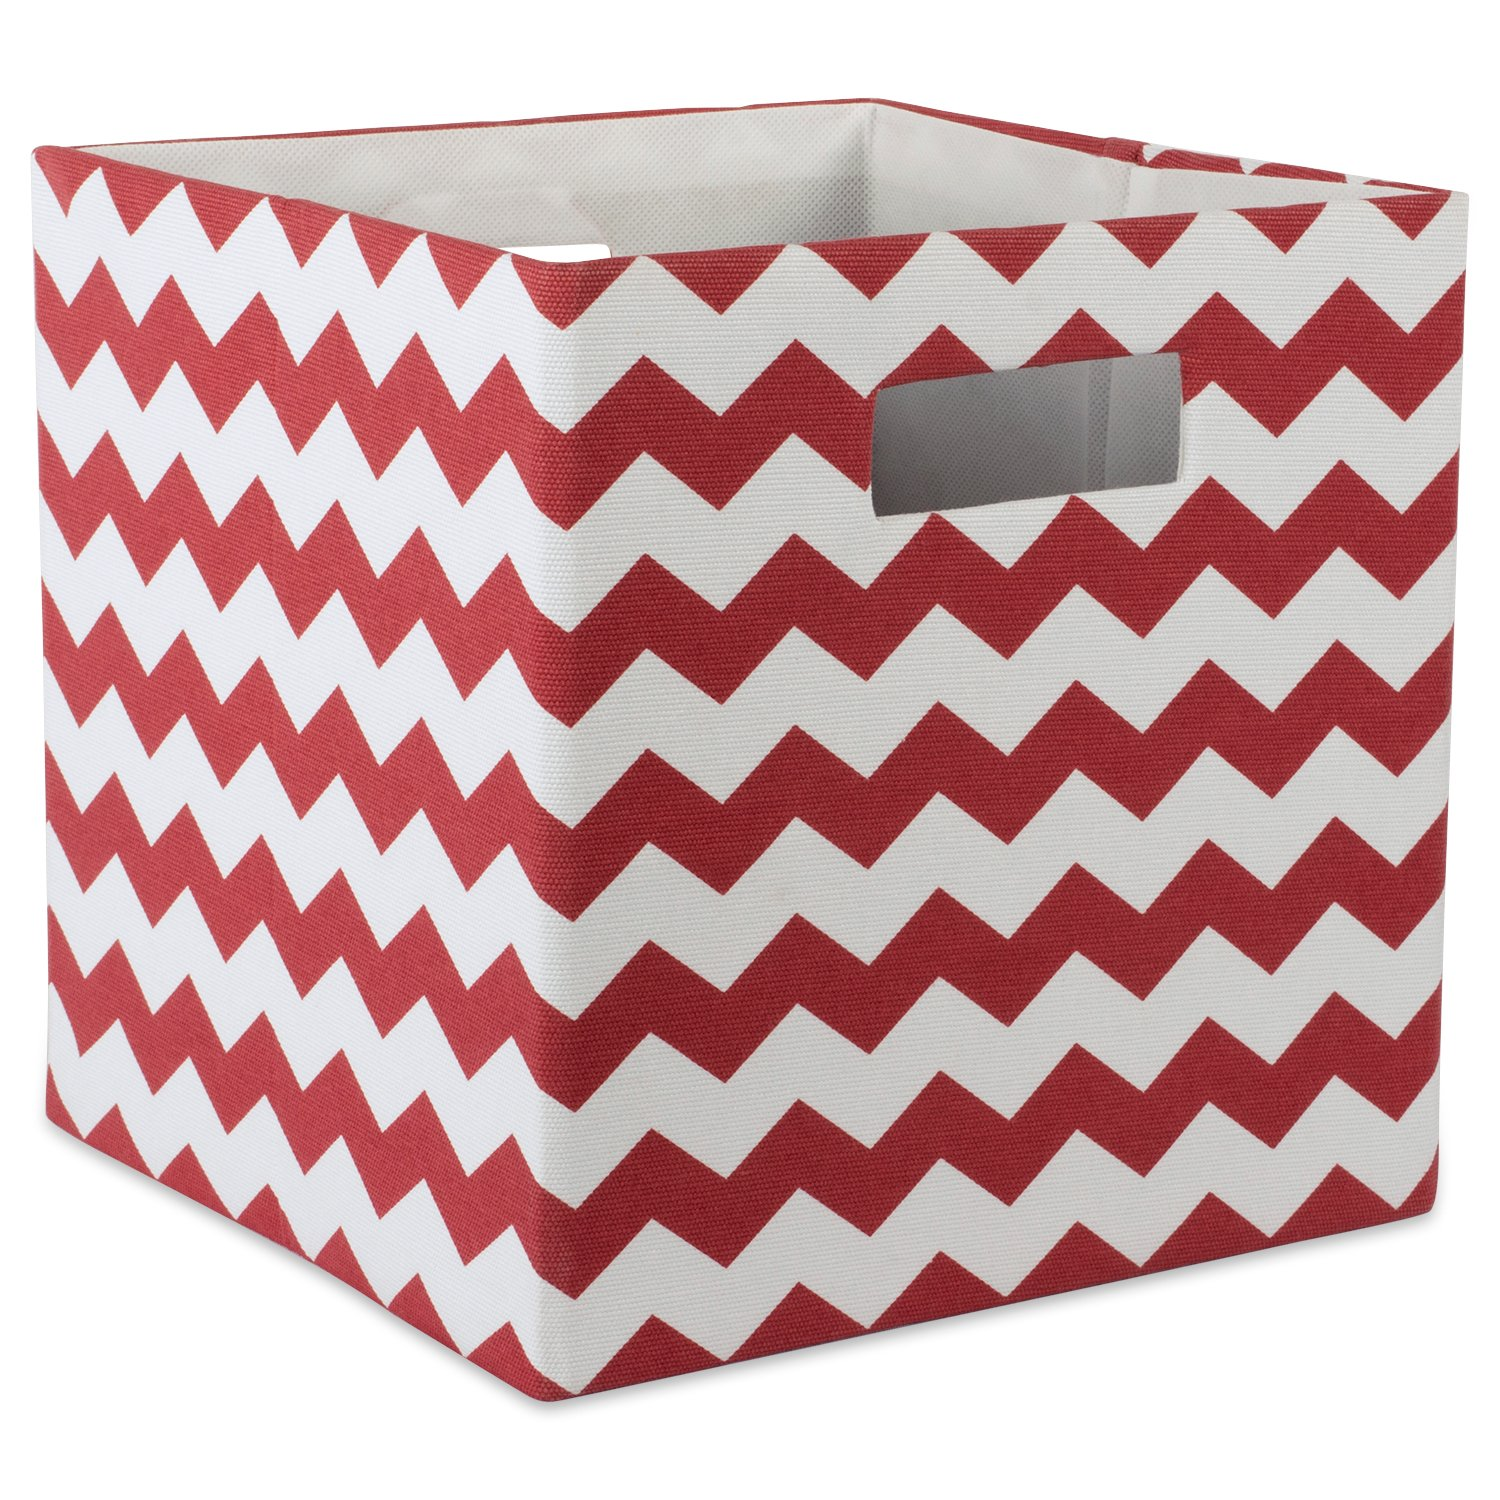 "DII Hard Sided Collapsible Fabric Storage Container for Nursery, Offices, & Home Organization, (11x11x11"") - Chevron Rust"